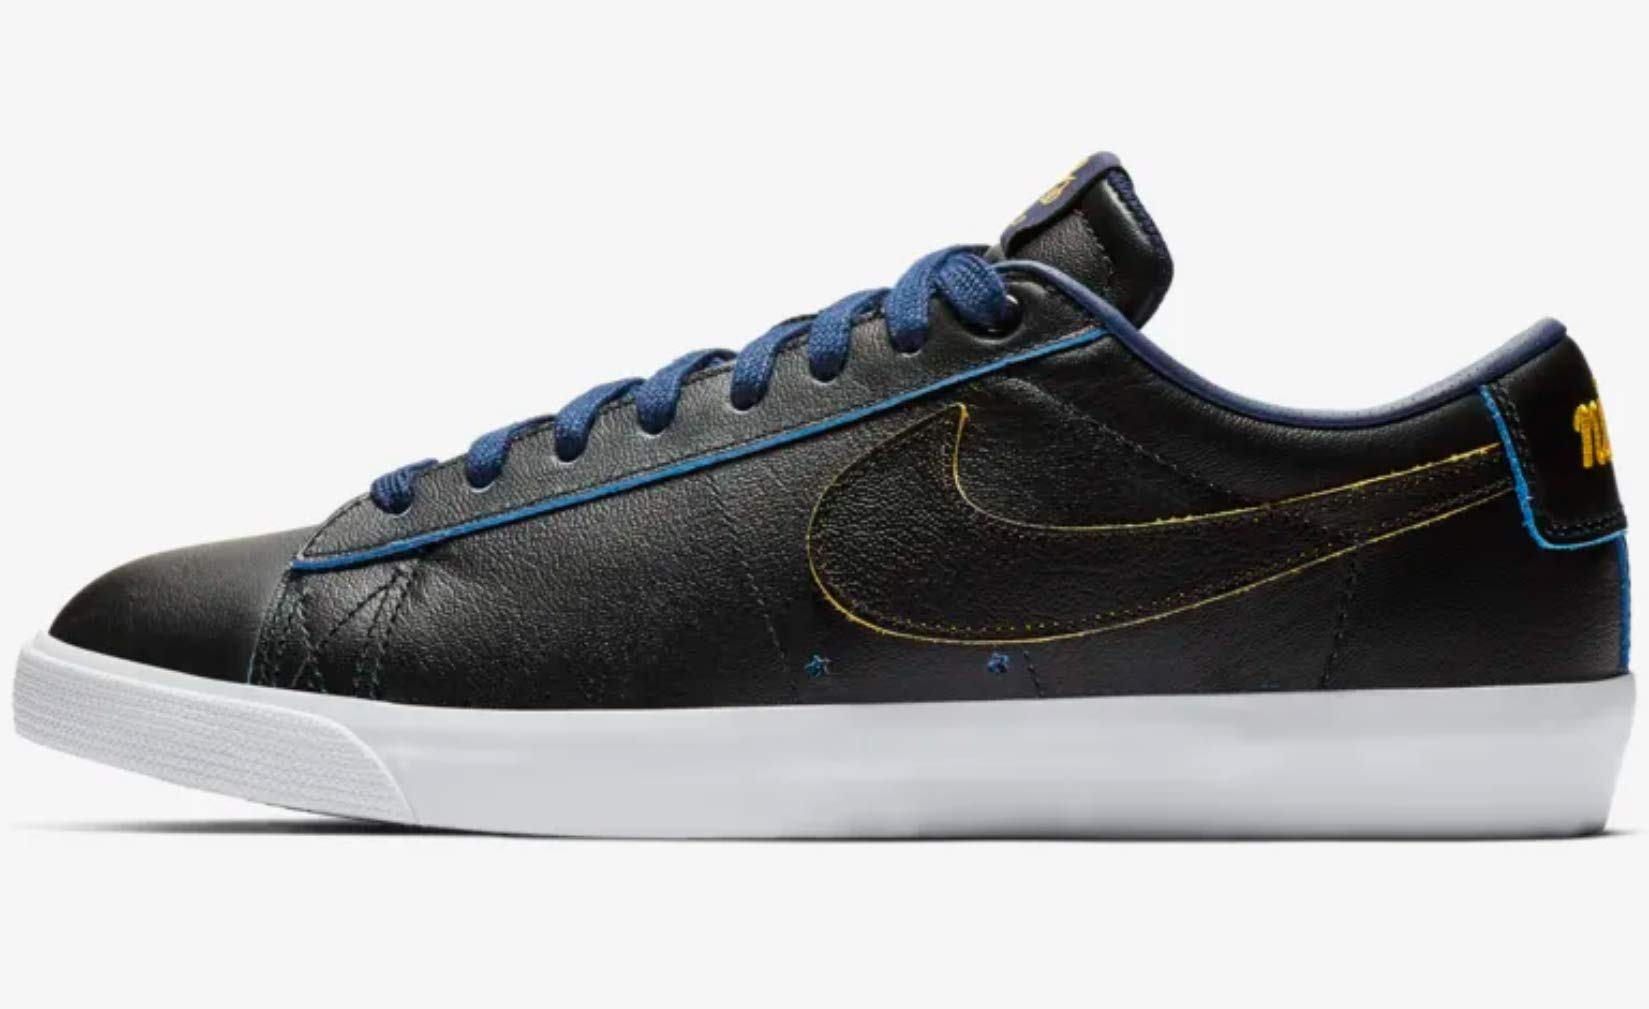 d607ae7c705bb ... Nike Sb Zoom Blazer Low Gt NBA Mens Bq6389-001. Previous. Next